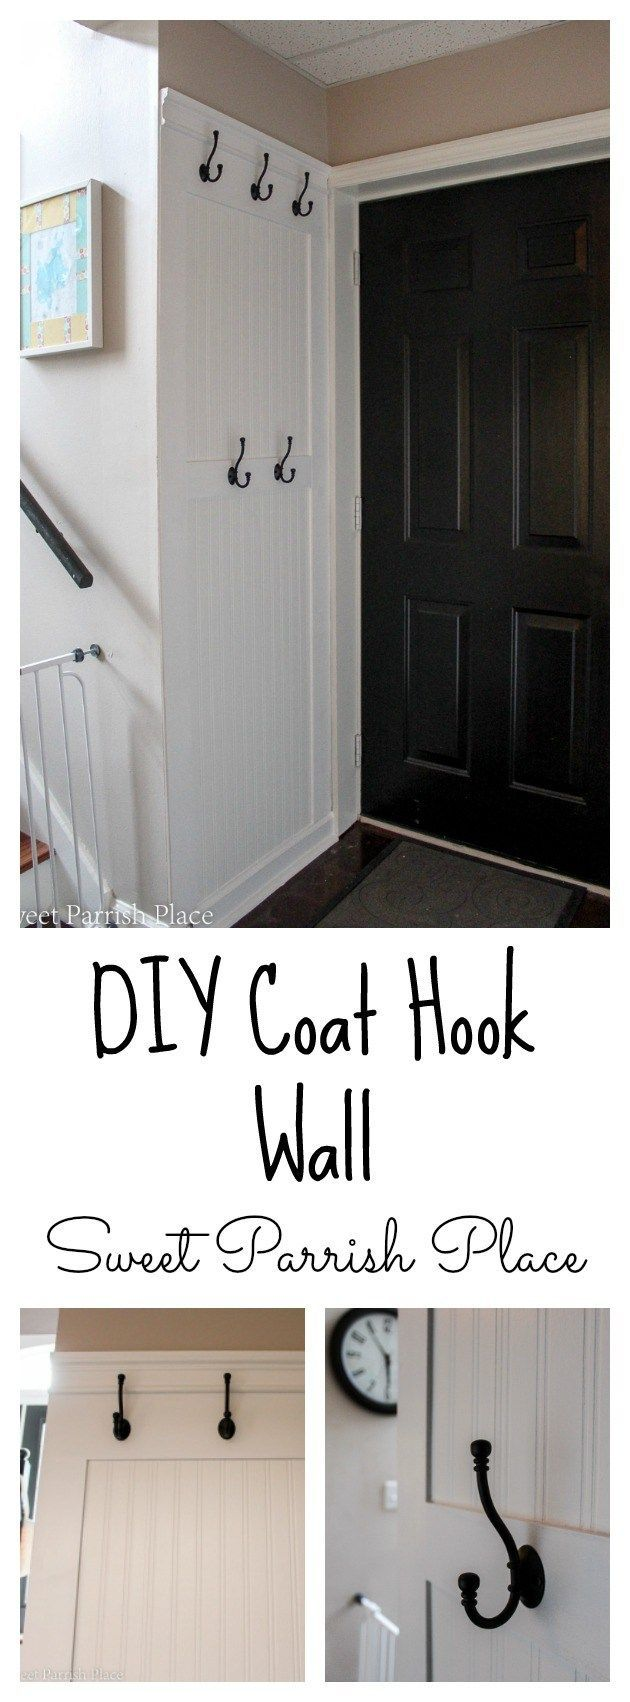 Best 25+ Diy coat hooks ideas on Pinterest